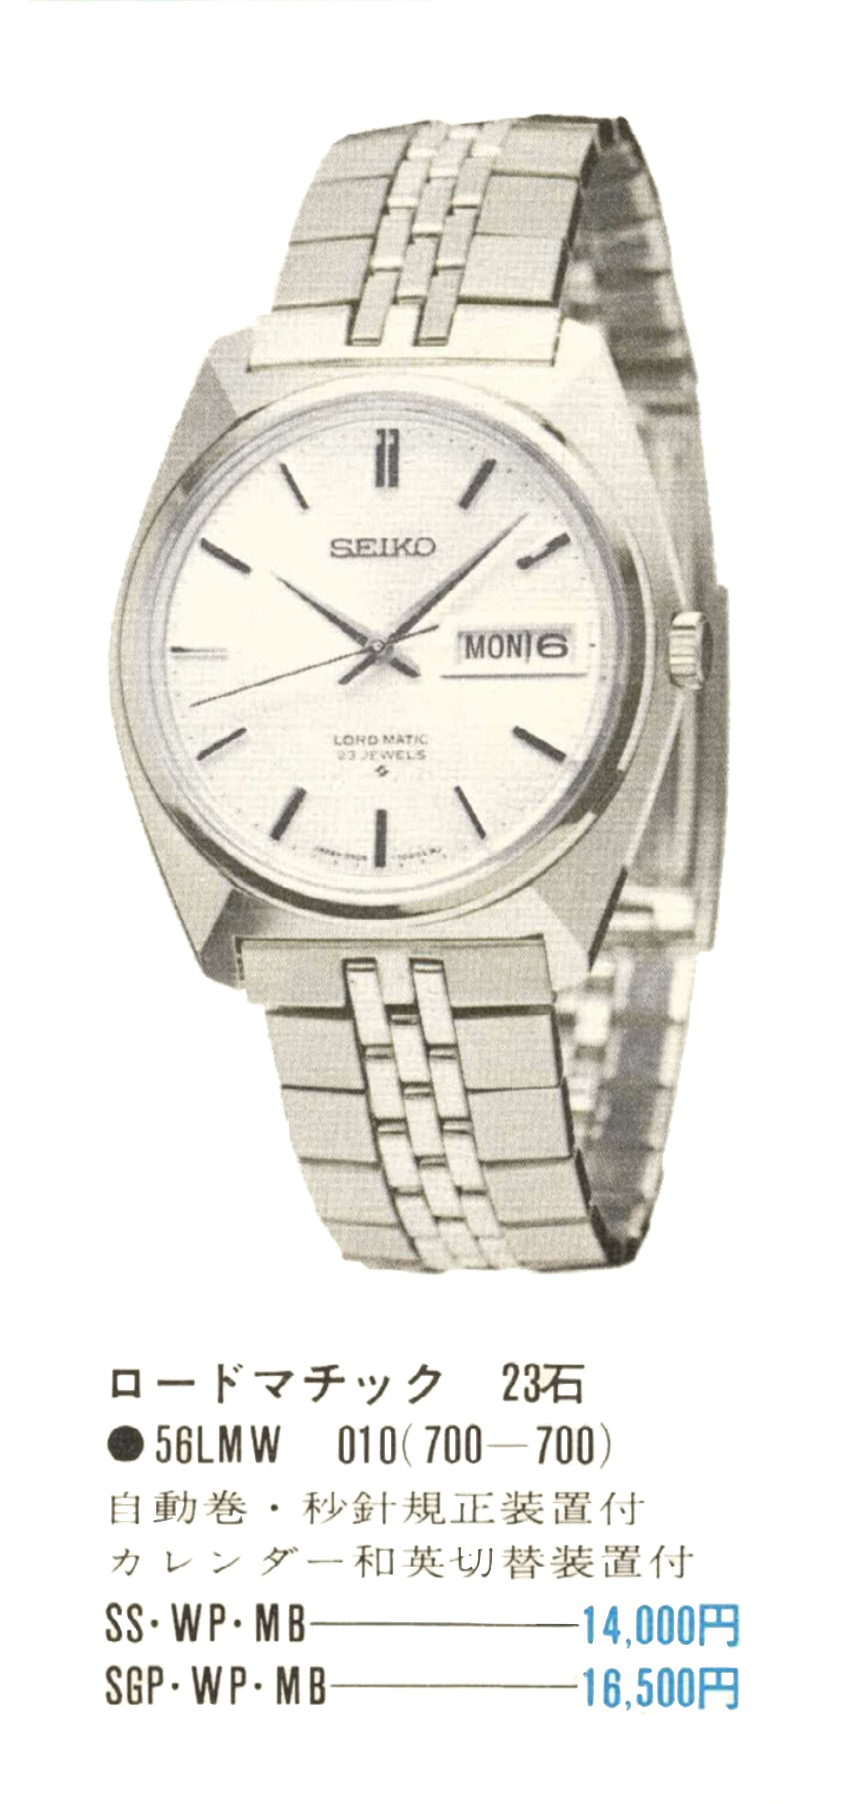 Seiko Lord-Matic 5606-7000 (Sold/Service)